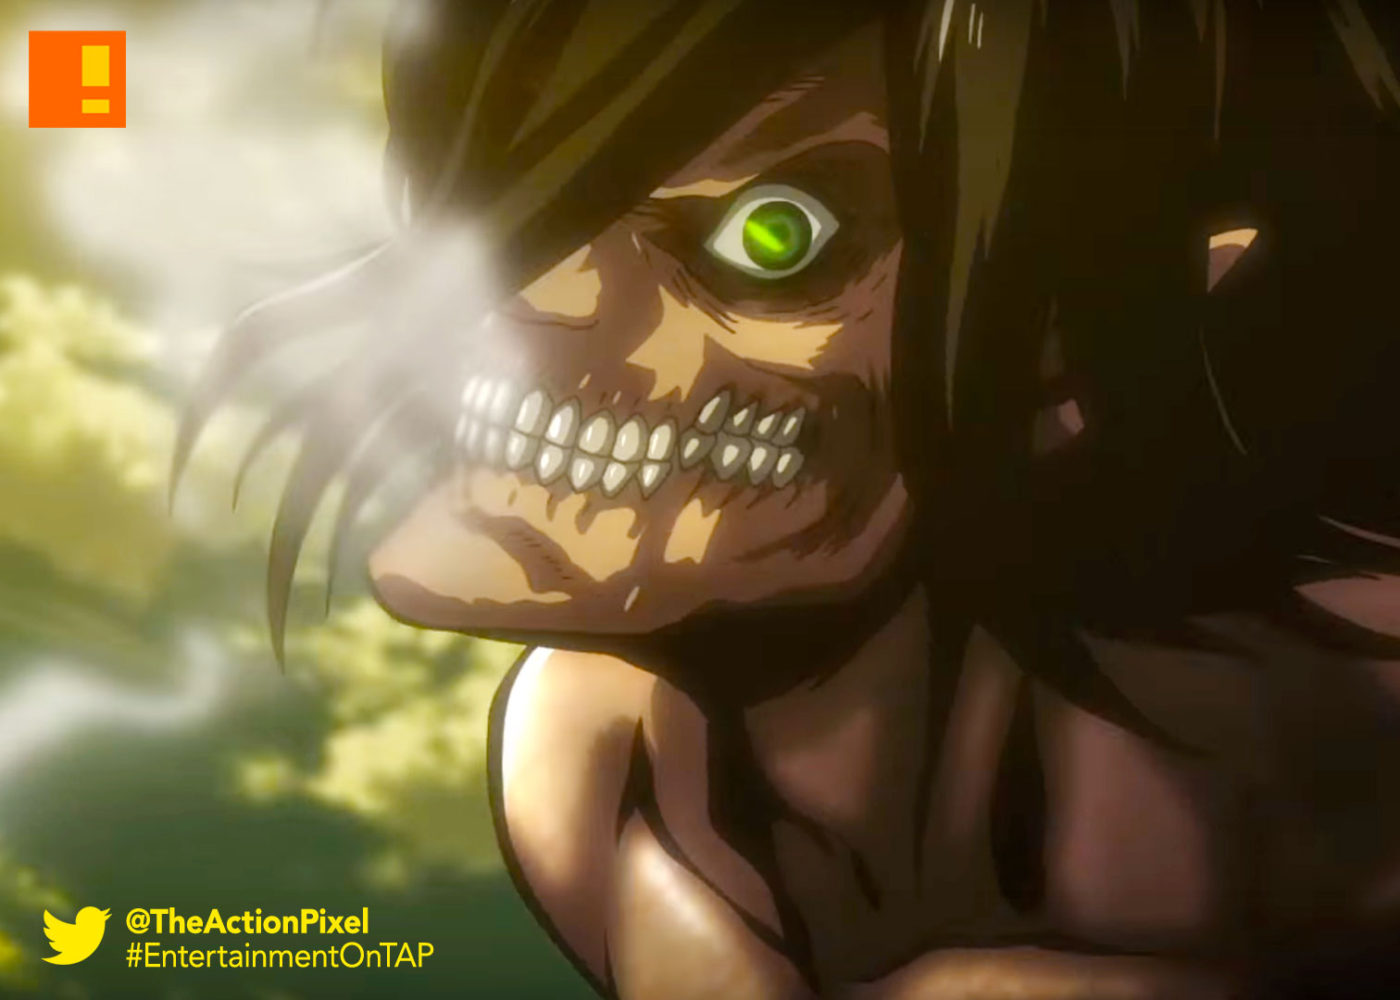 attack on titan, season 2, trailer, teaser, teaser trailer, eren, funimation, entertainment on tap, the action pixel